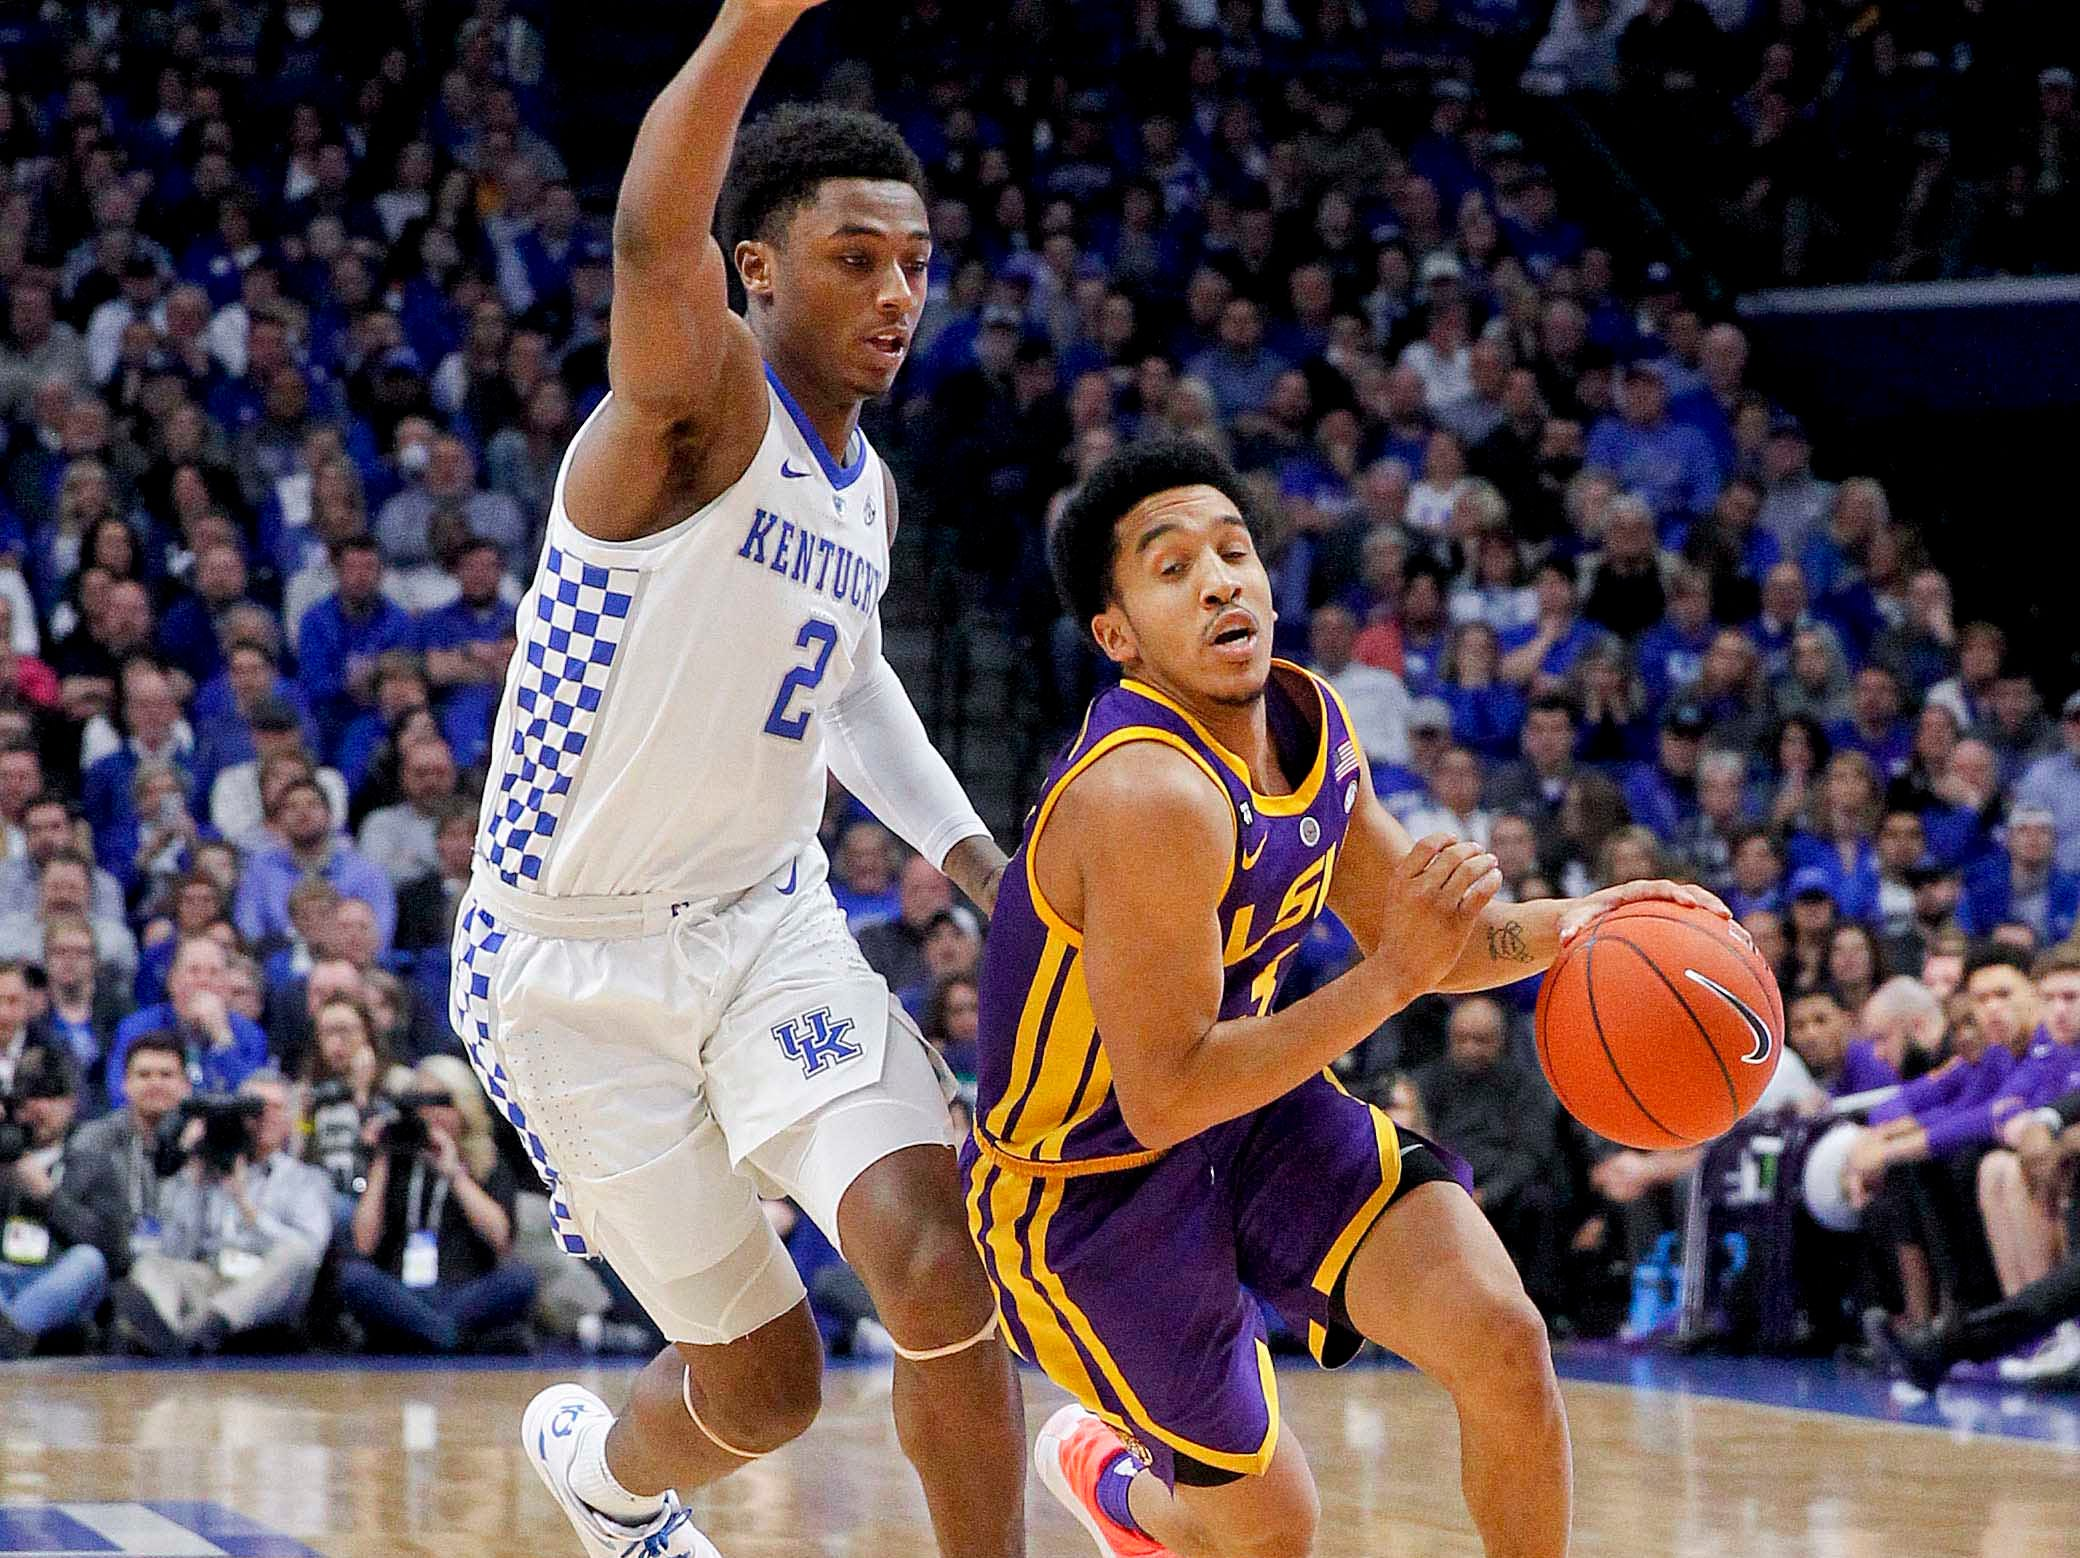 Feb 12, 2019; Lexington, KY, USA; LSU Tigers guard Tremont Waters (3) dribbles the ball against Kentucky Wildcats guard Ashton Hagans (2) in the second half at Rupp Arena. Mandatory Credit: Mark Zerof-USA TODAY Sports